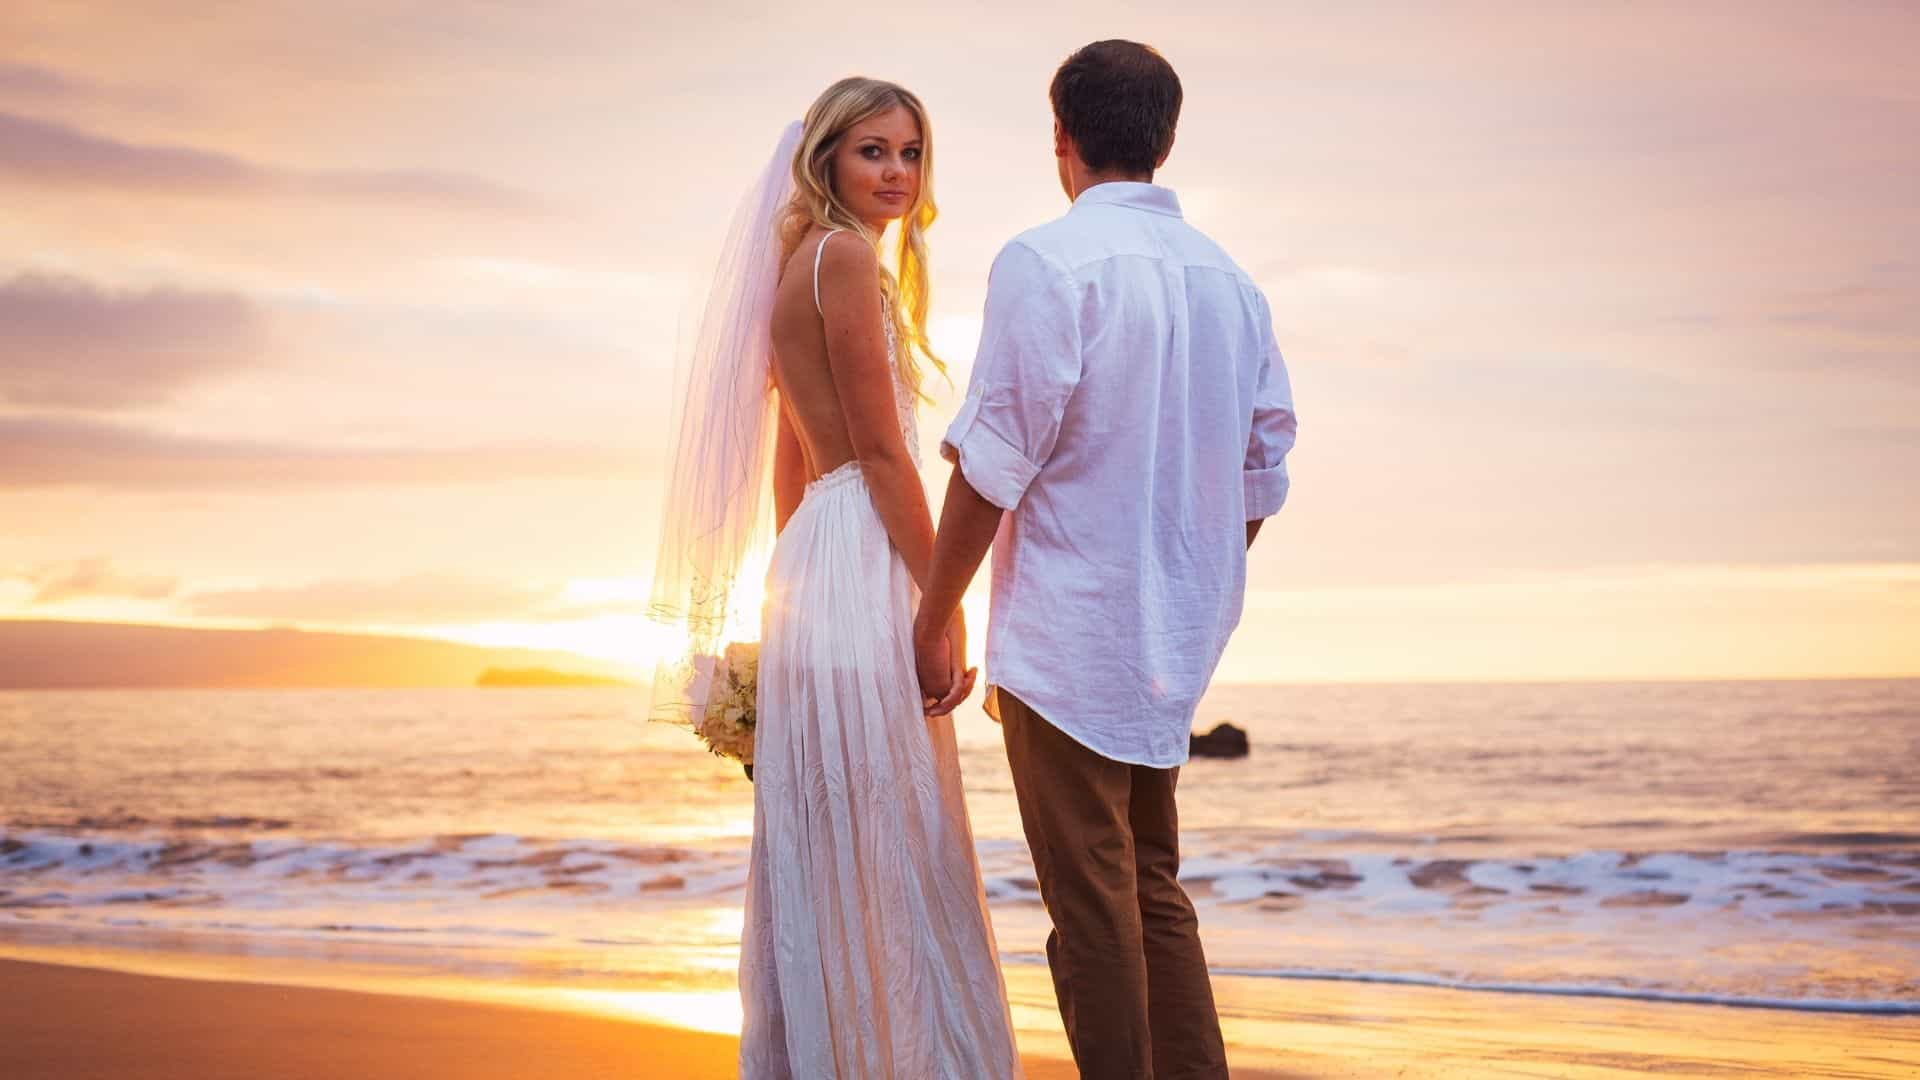 Is it legal to marry your sister in Australia?